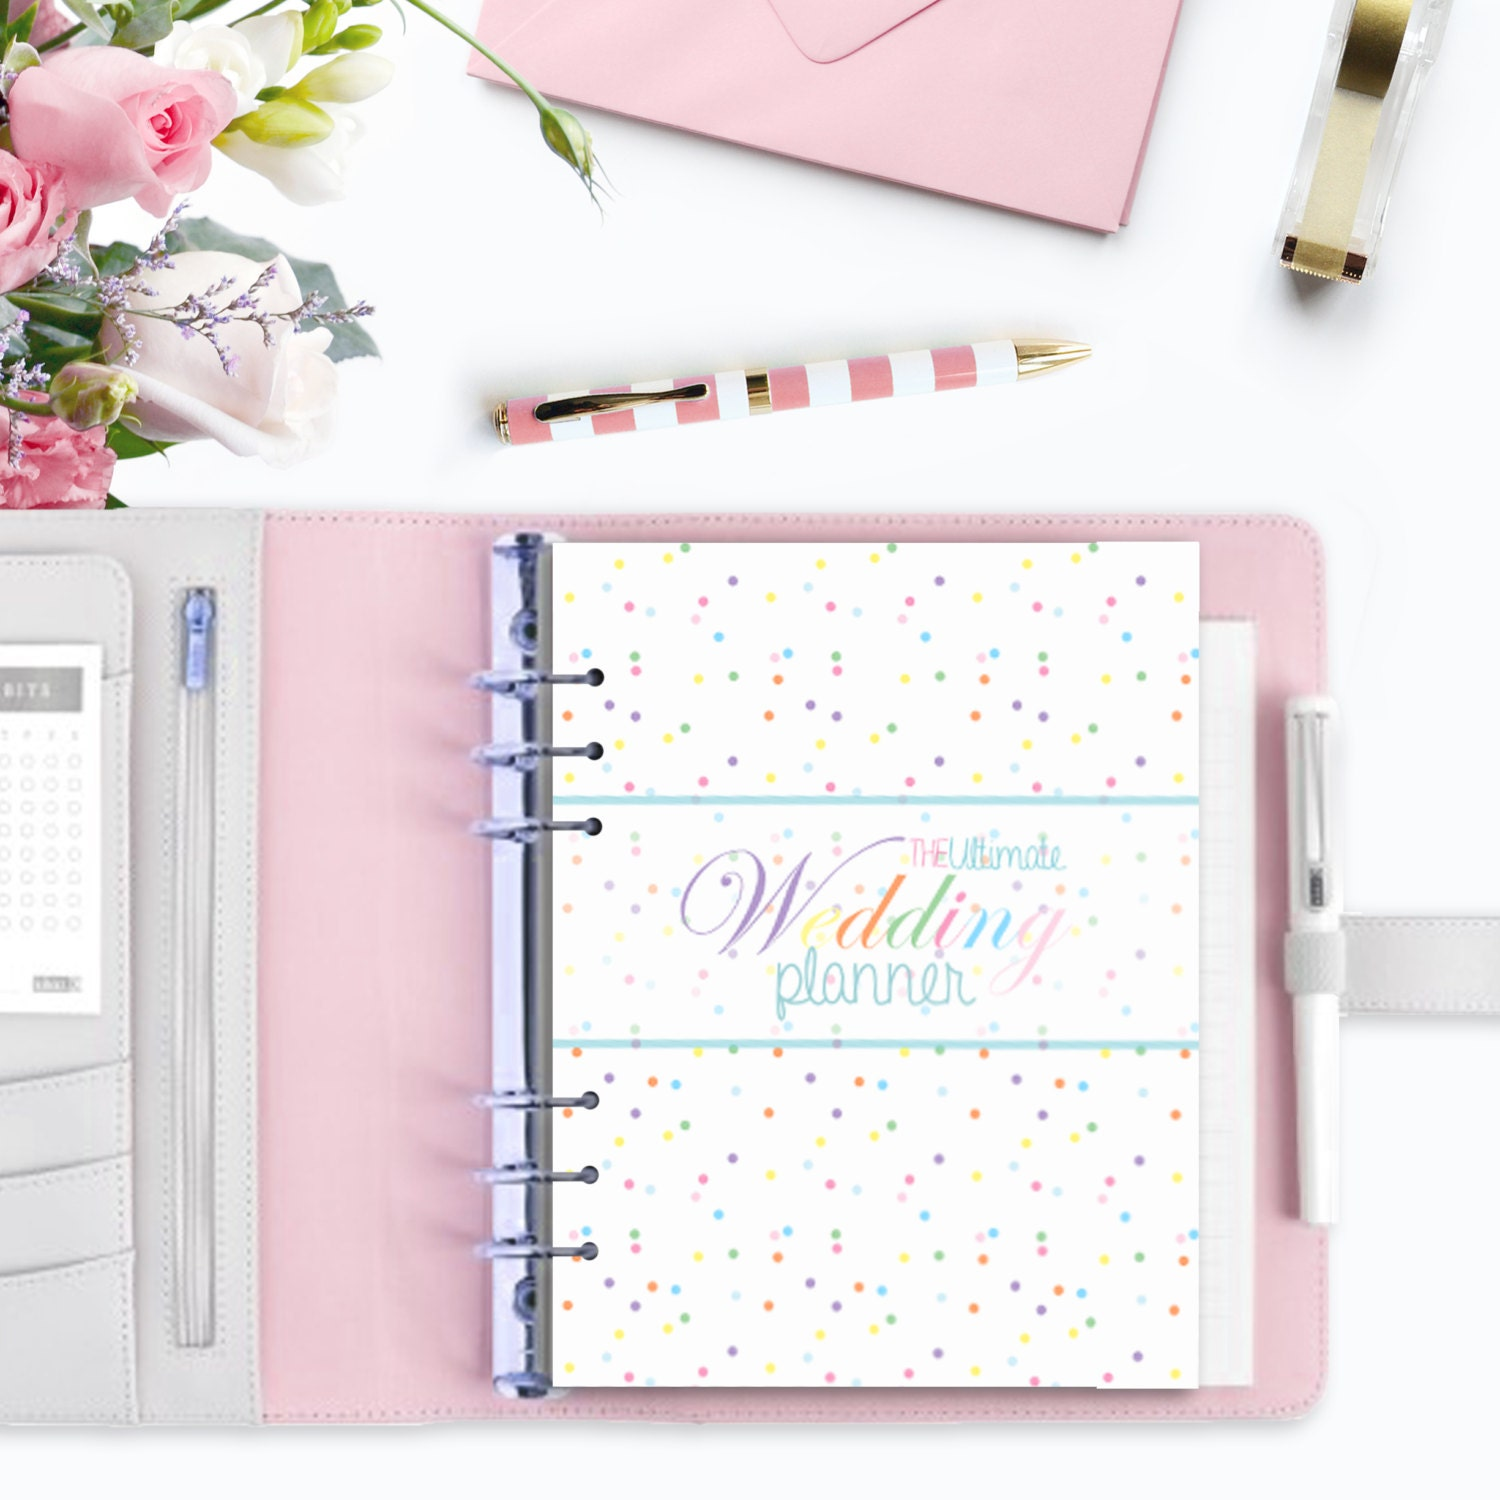 WEDDING PLANNER Ultimate Printable Wedding Organizer